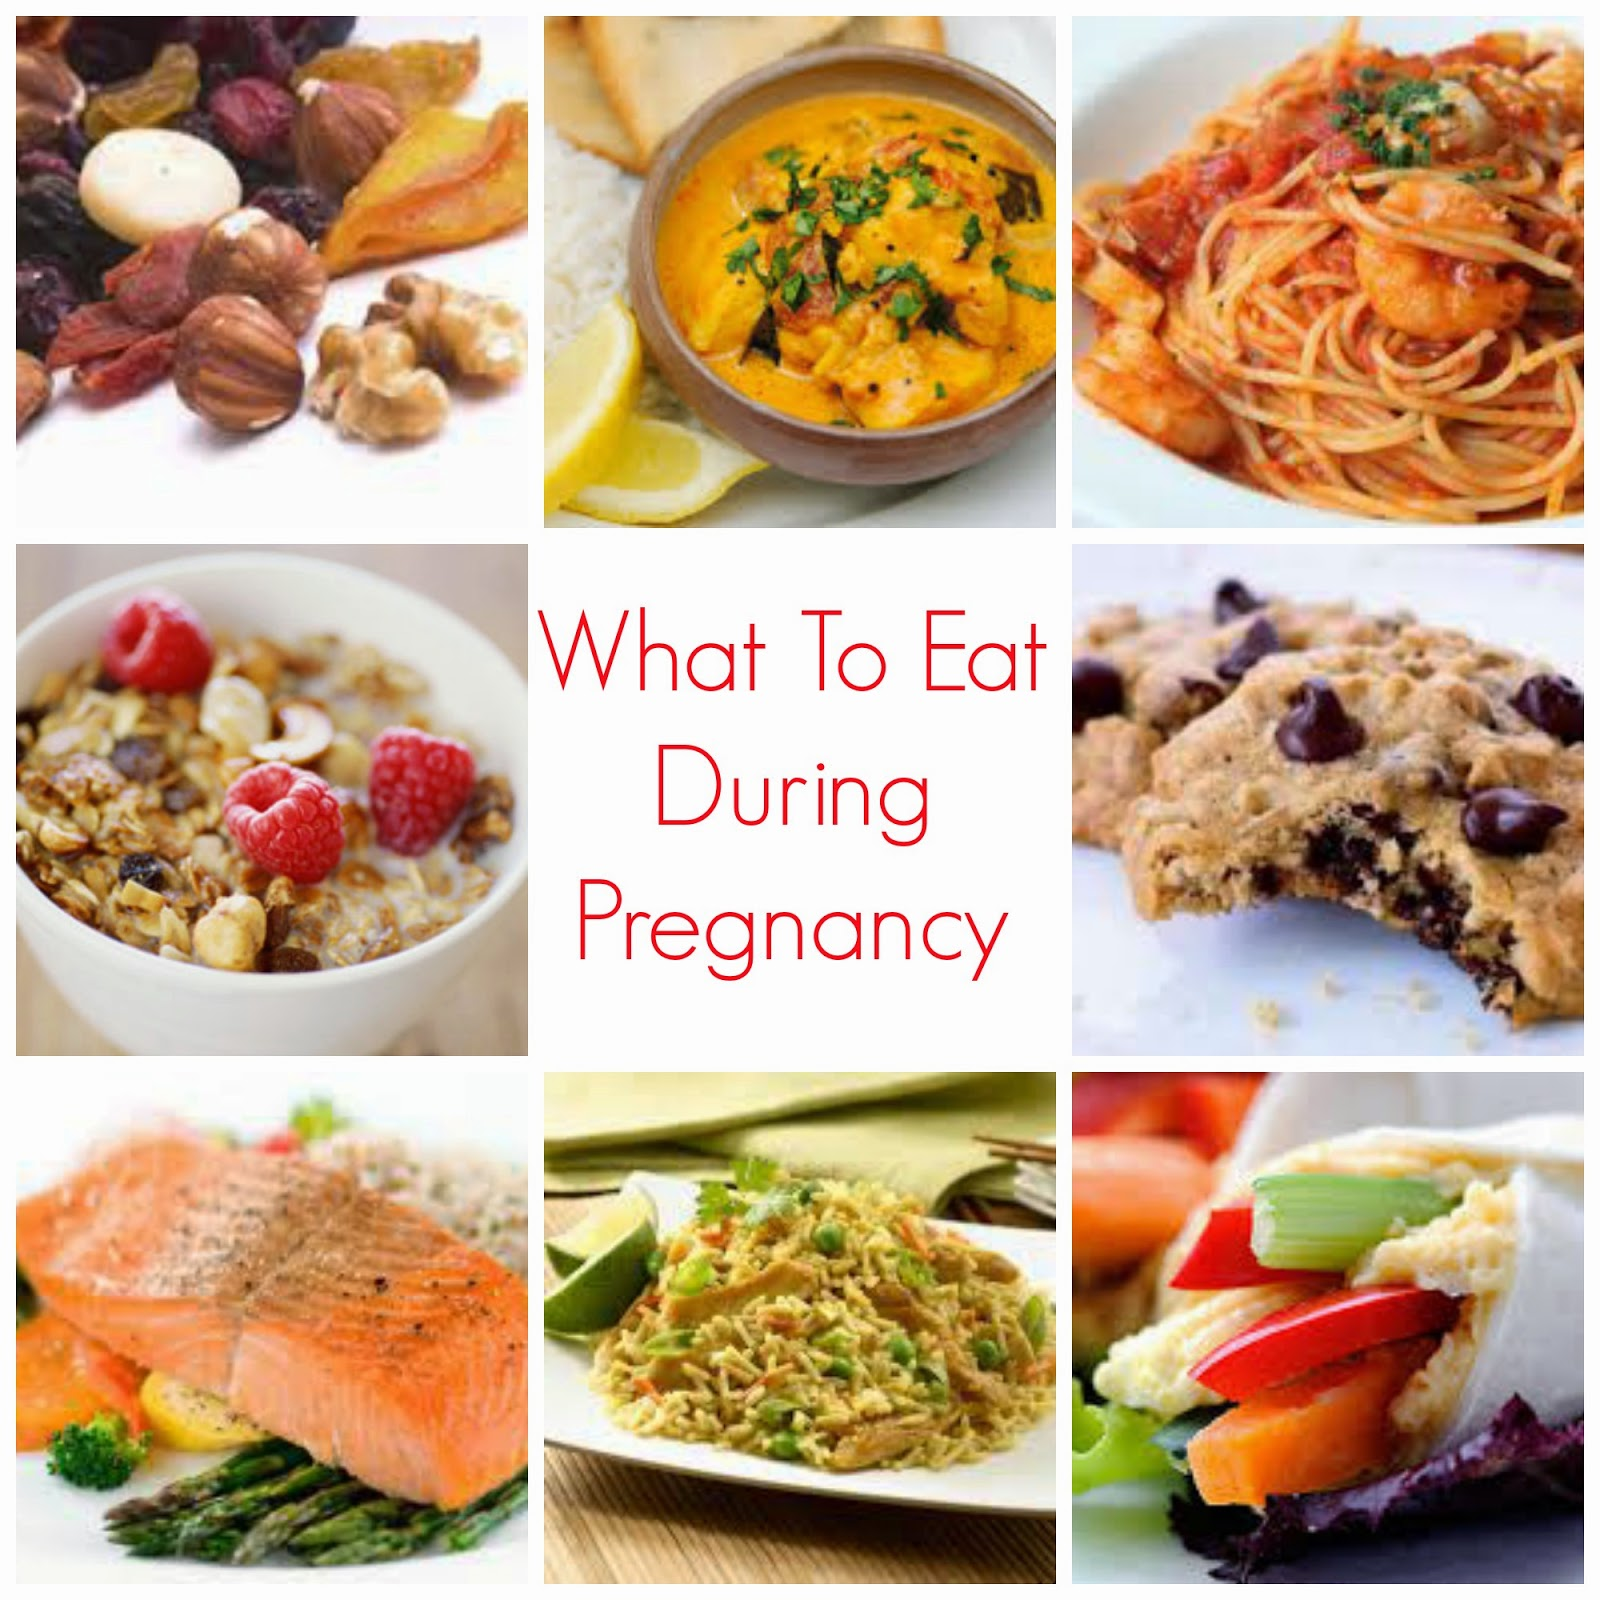 Foods You Should Not Eat While Pregnant